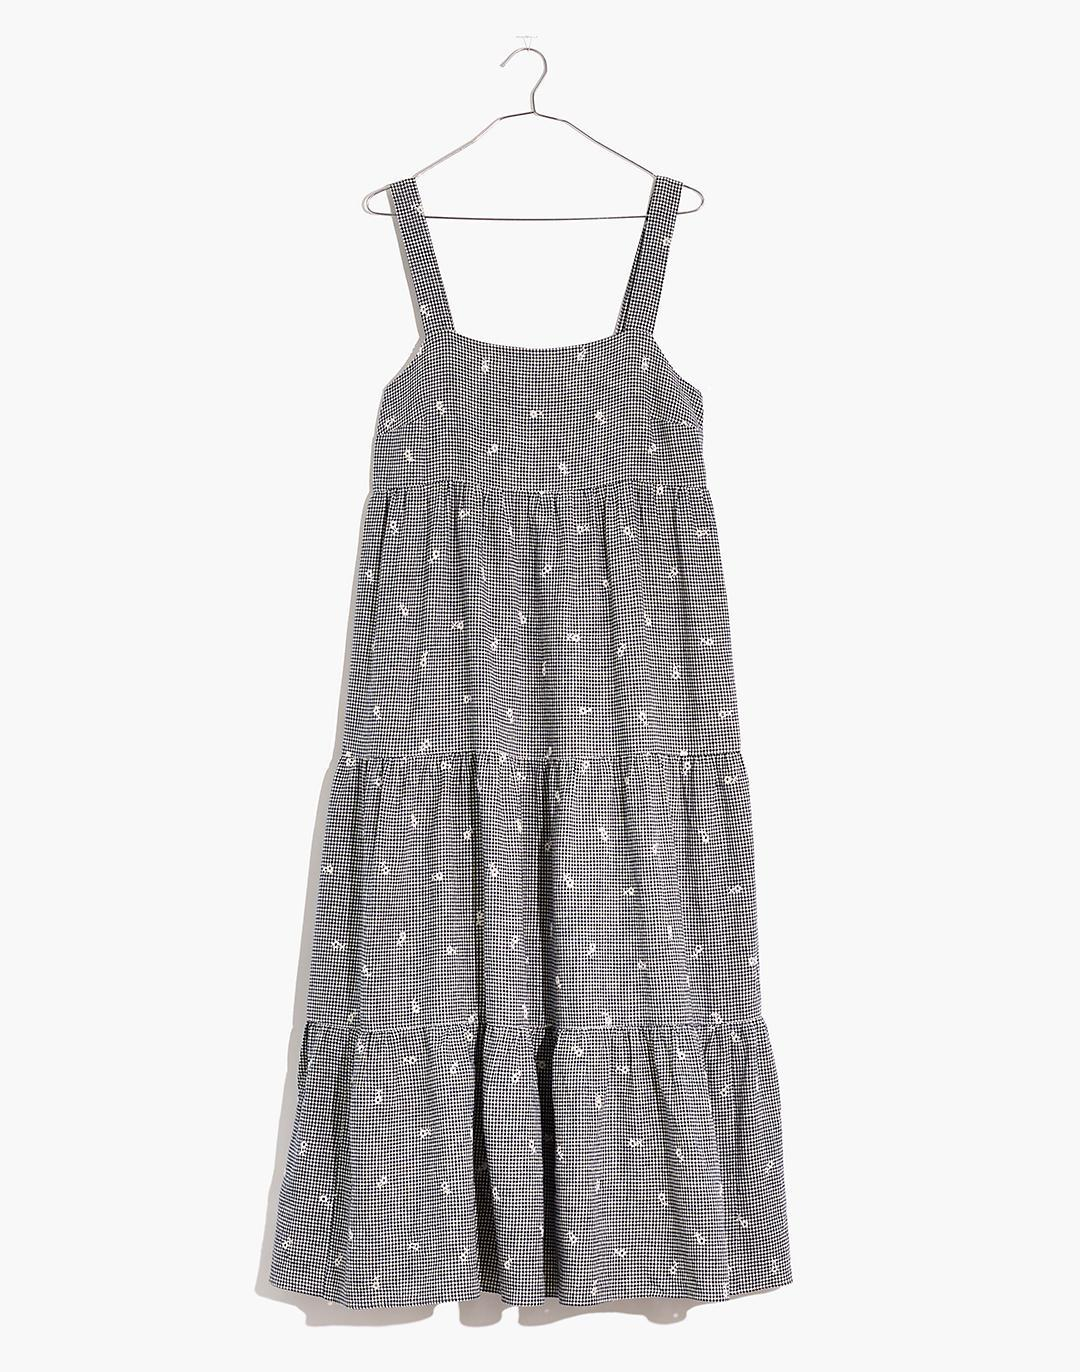 Petite Embroidered Tiered Midi Dress in Gingham Check